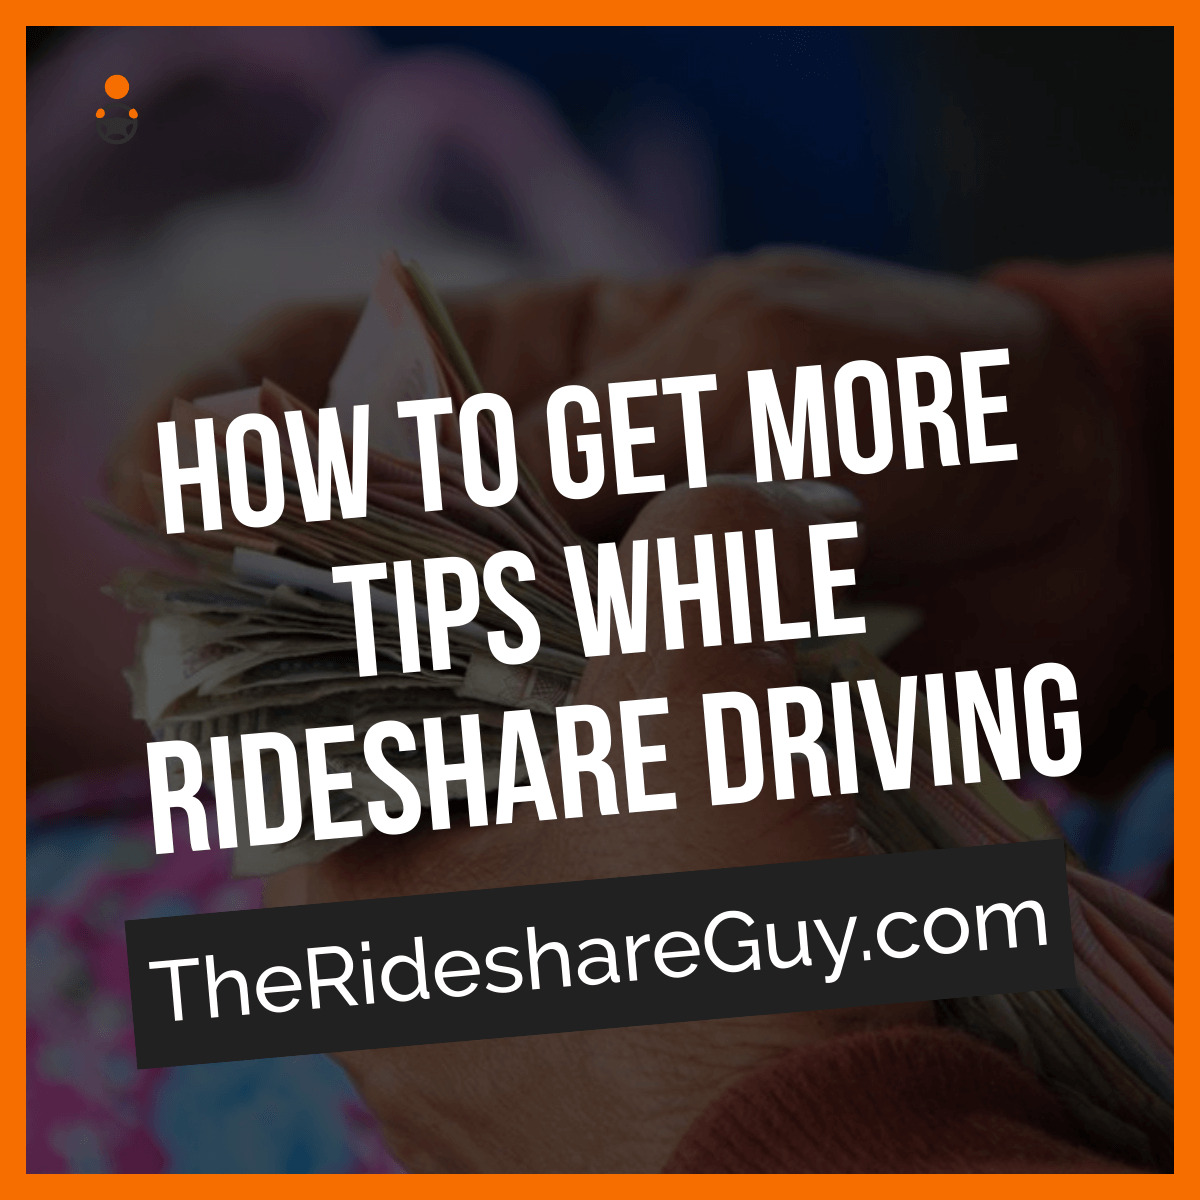 How to get more tips